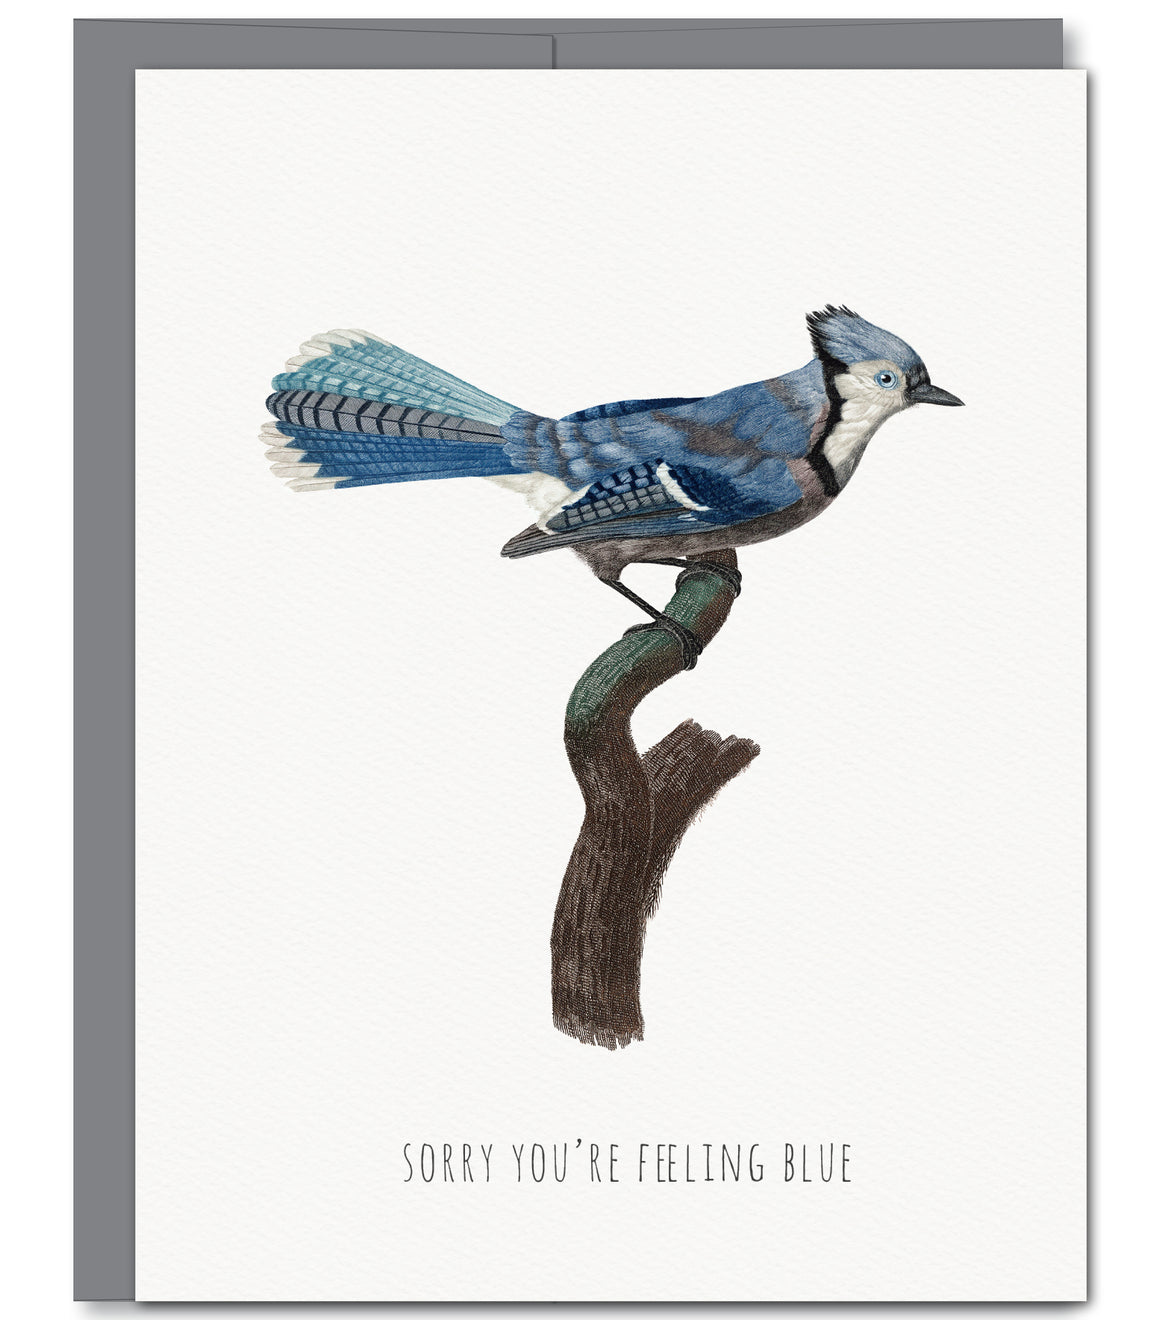 Feeling Blue Friendship Everyday Glitter Greeting Card | Sylvan Gate Design